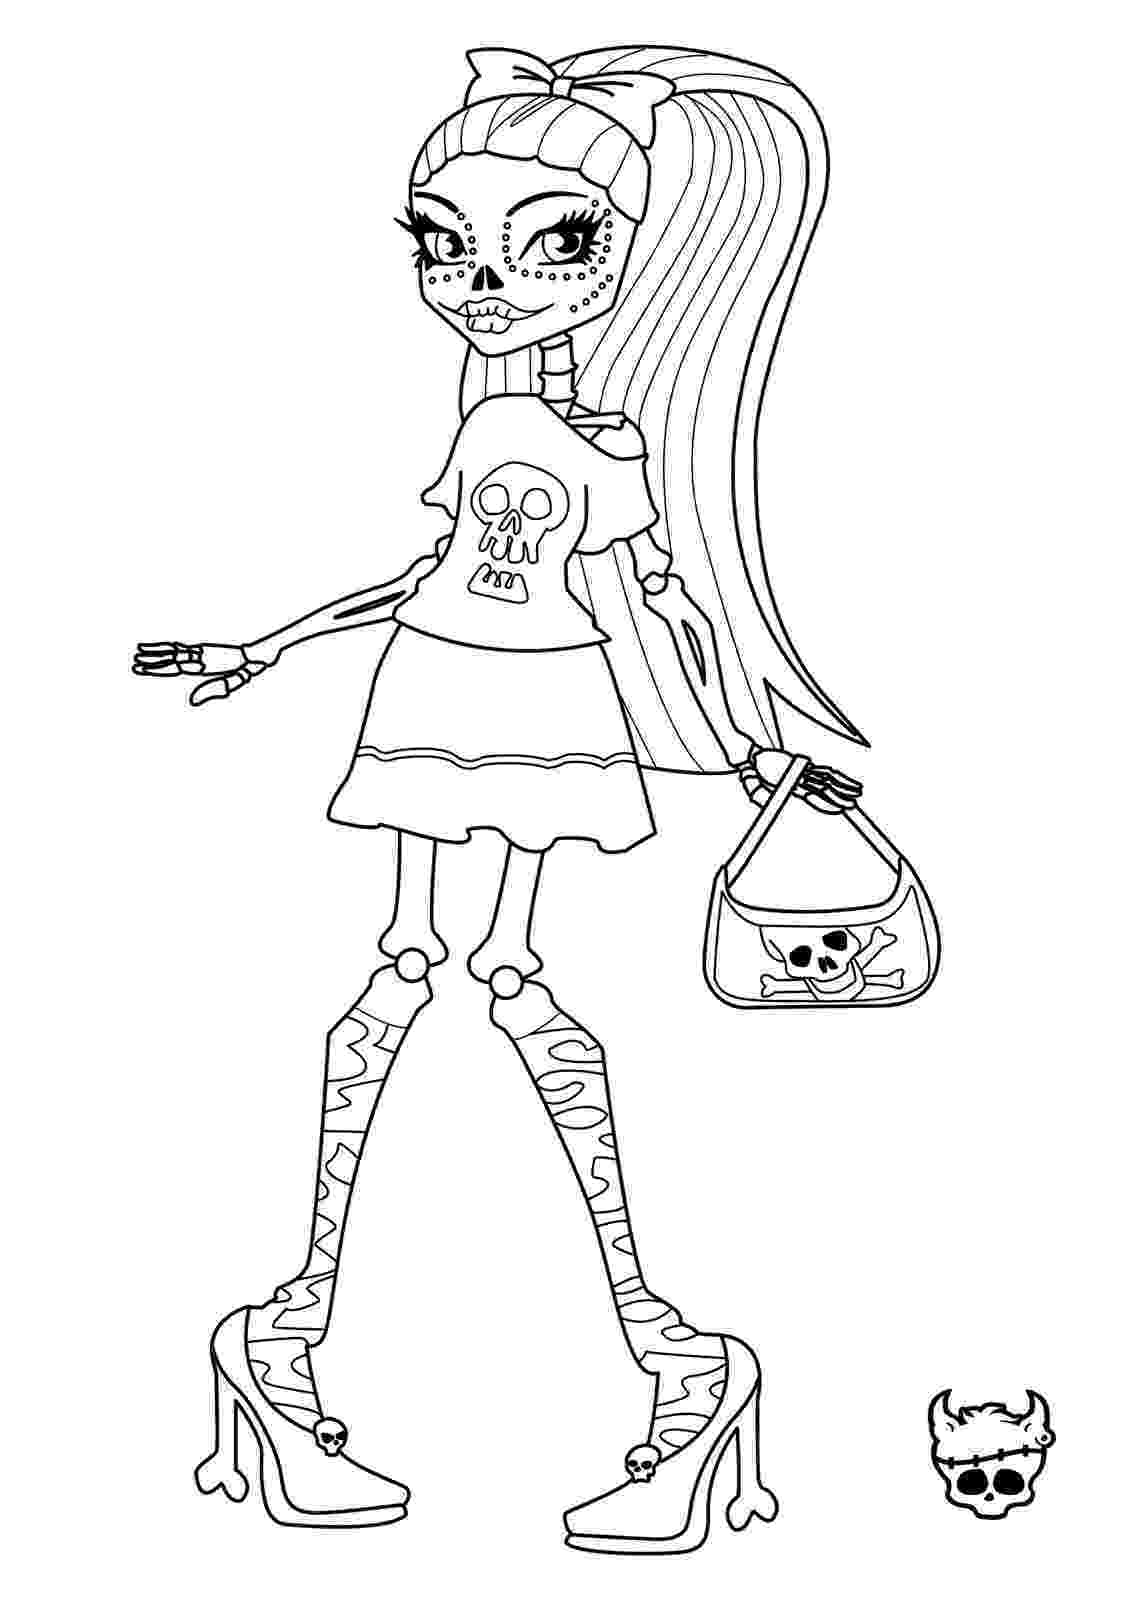 monster high printable coloring pages monster high jinafire long coloring pages free printable printable high monster pages coloring